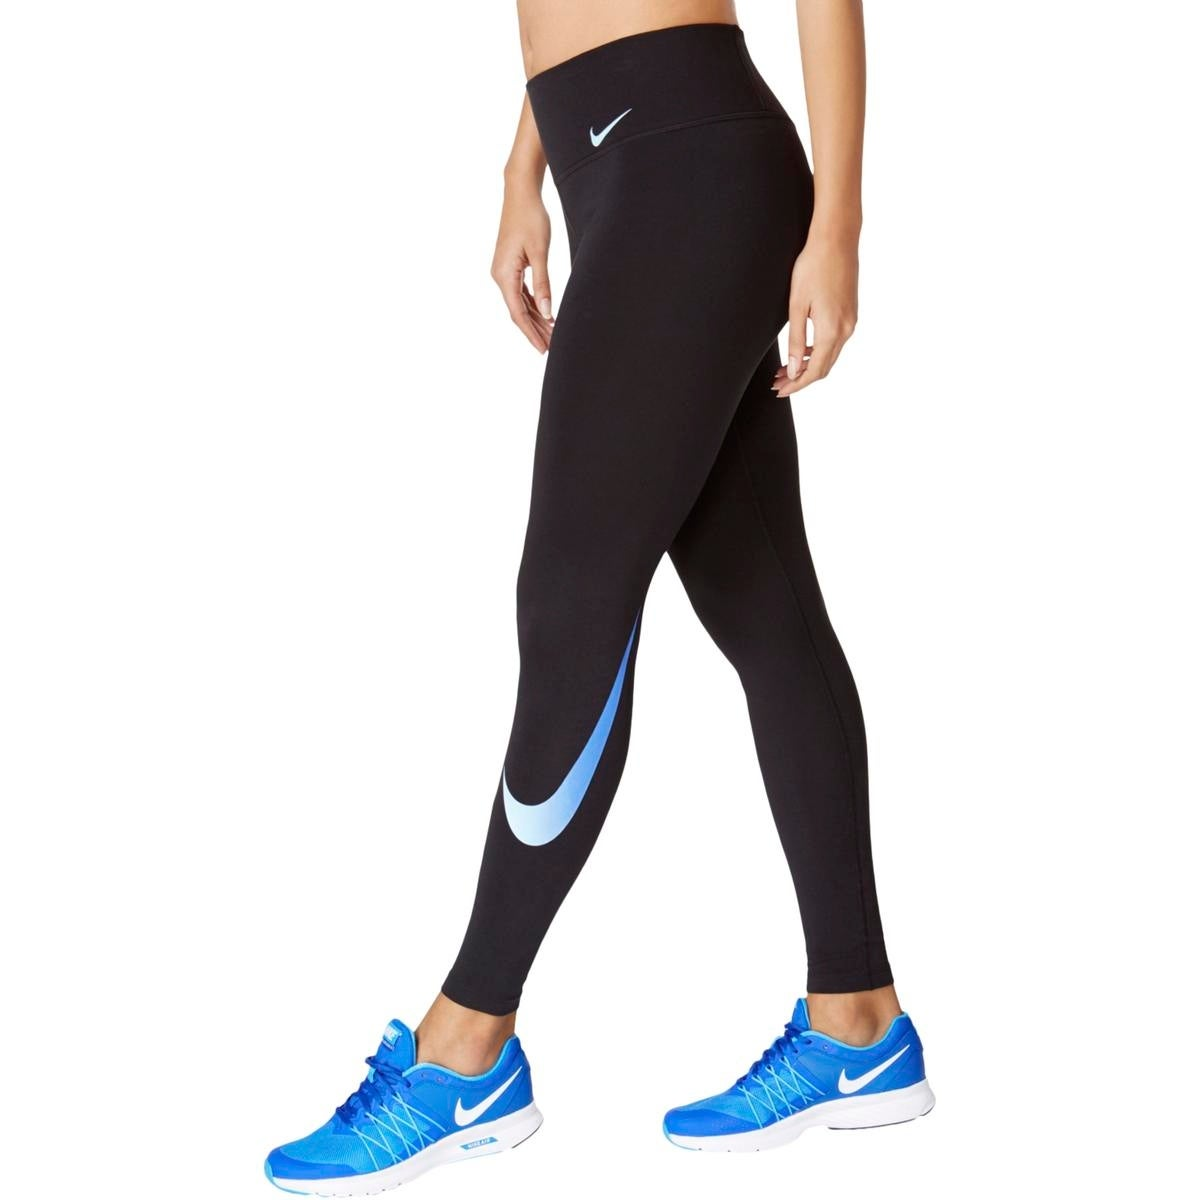 nike leggings xl